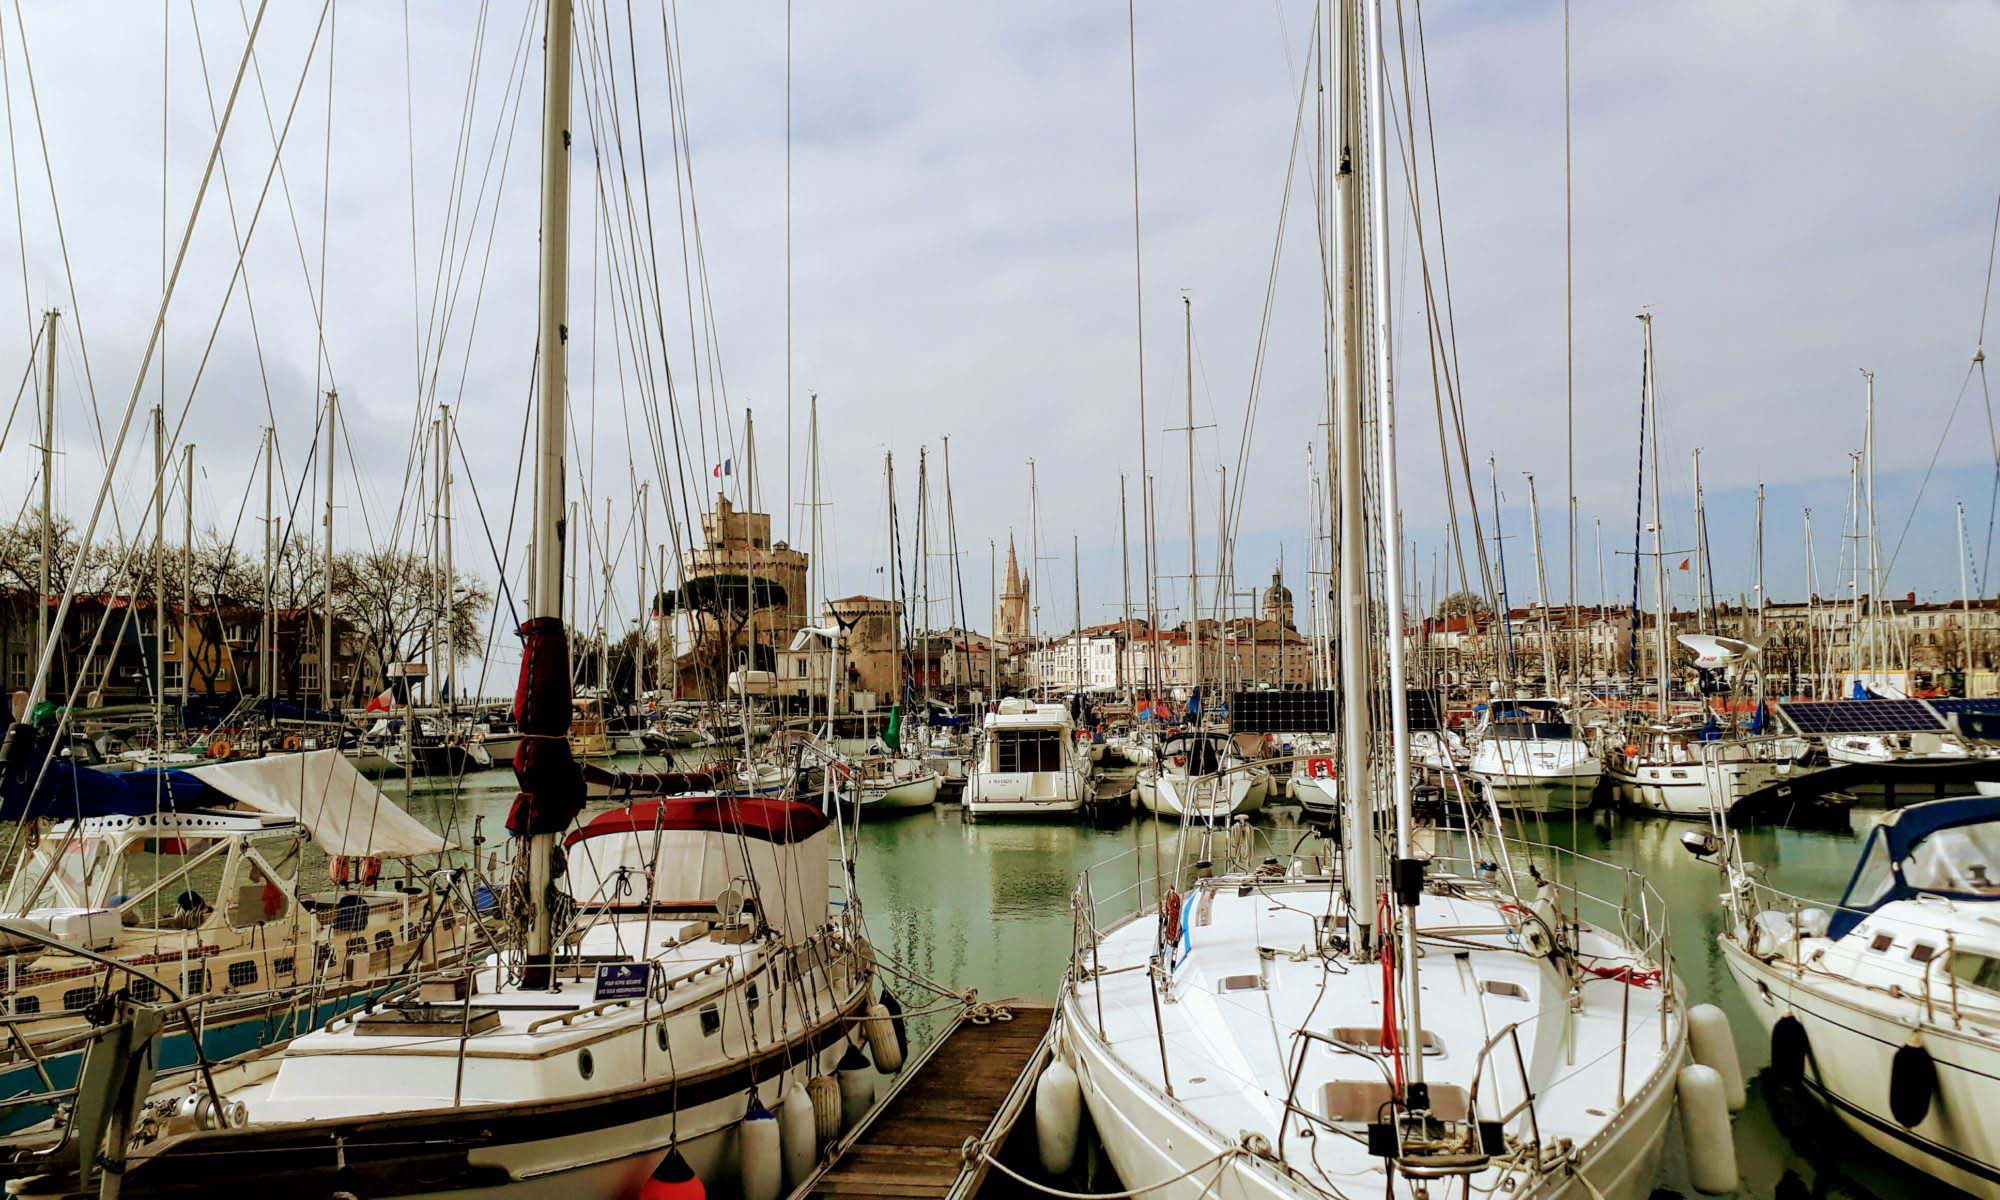 The old harbor (Le Vieux Port) of La Rochelle with the three towers